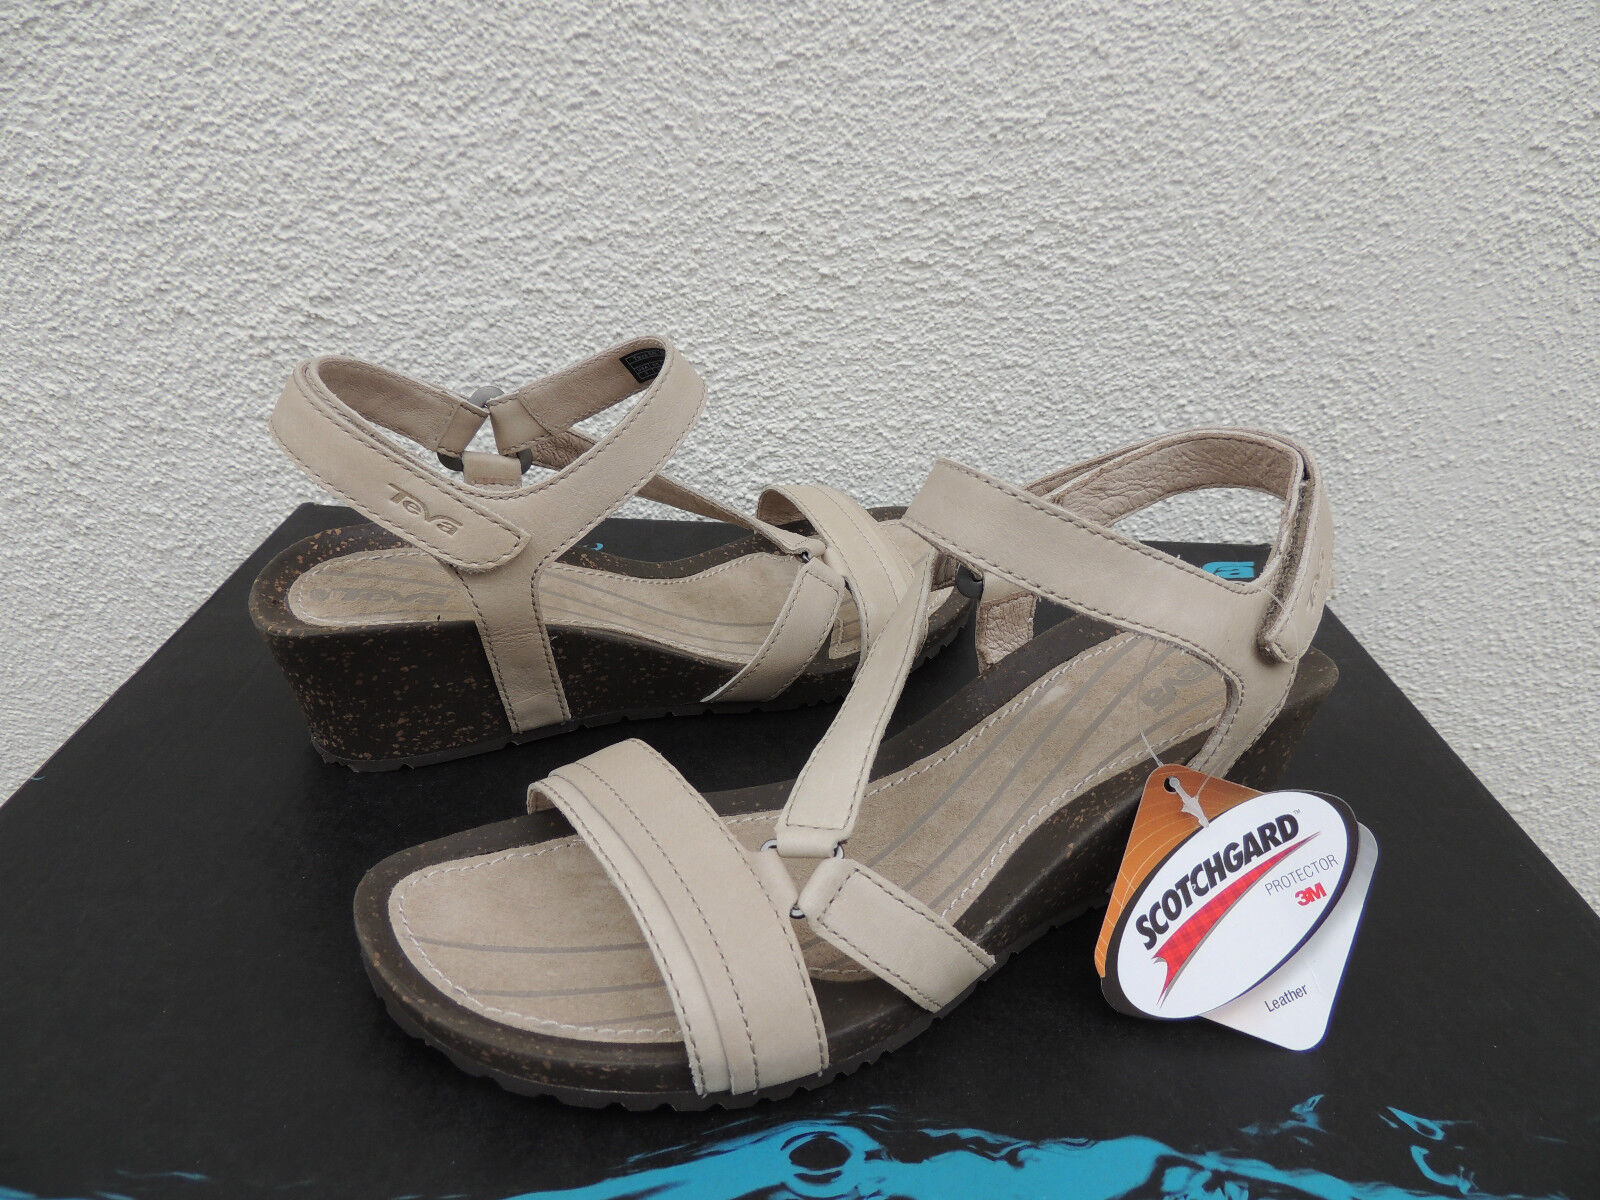 TEVA DUNE CABRILLO CredVER WEDGE LEATHER SANDALS, US 6  EUR 37 NIB